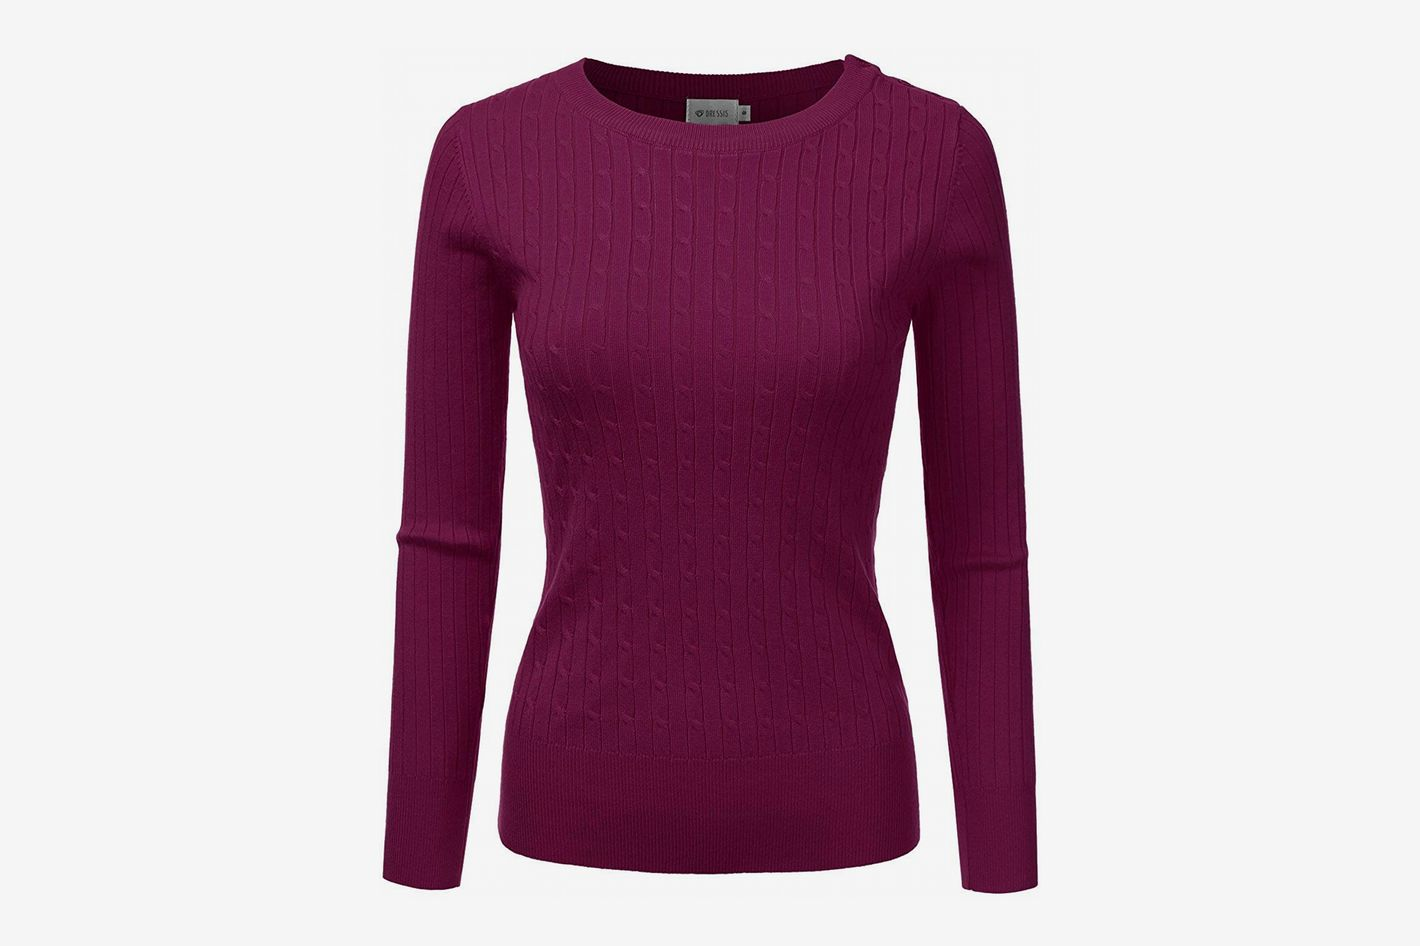 731fca33c8a DRESSIS Women s Long Sleeve Round Neck Cable Knit Sweater